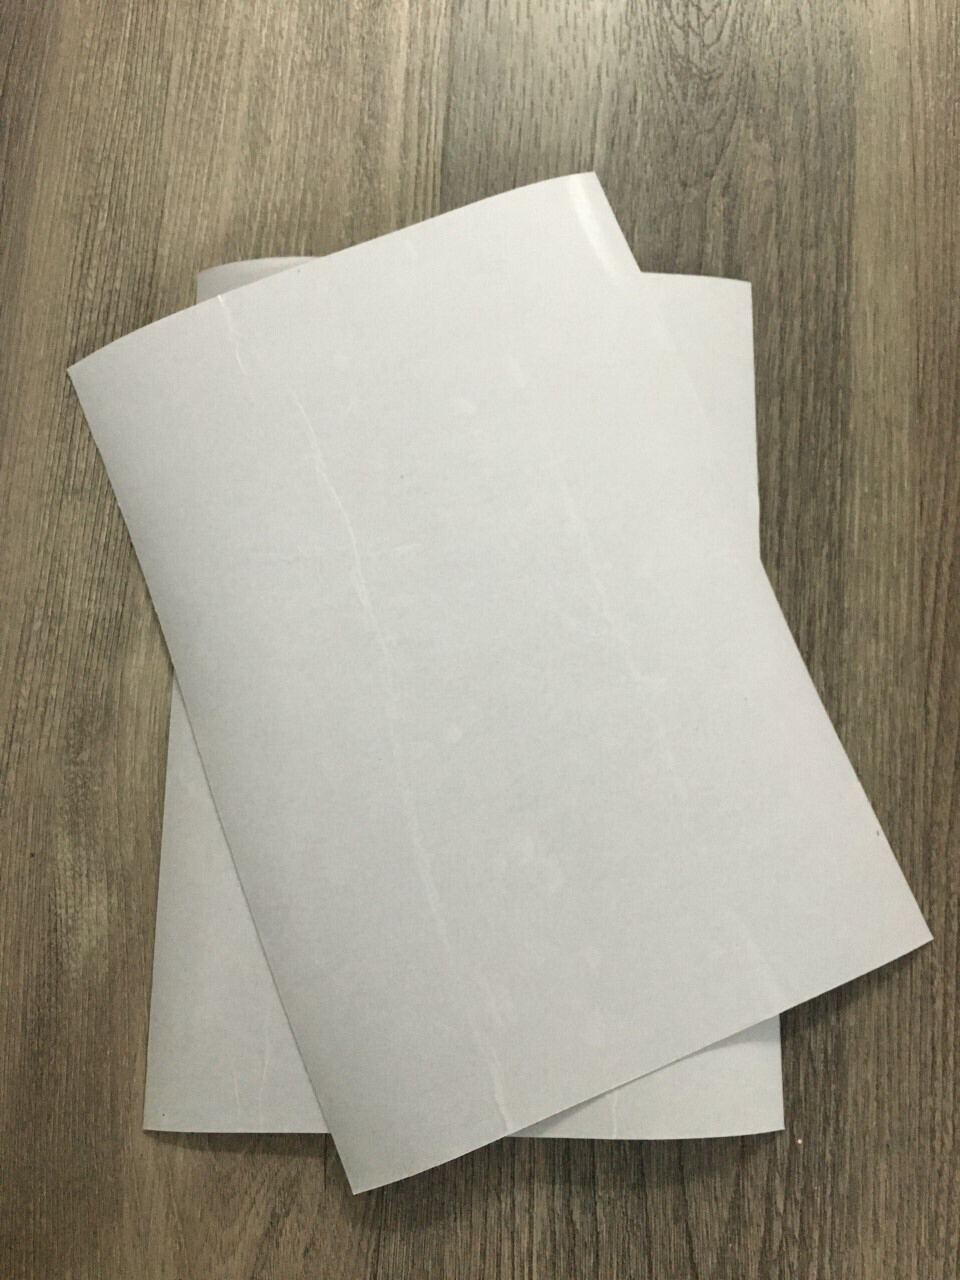 Premium Magnetic Sheet .75mm Thick Self Adhesive A4 x 3 Ideal for Die storage